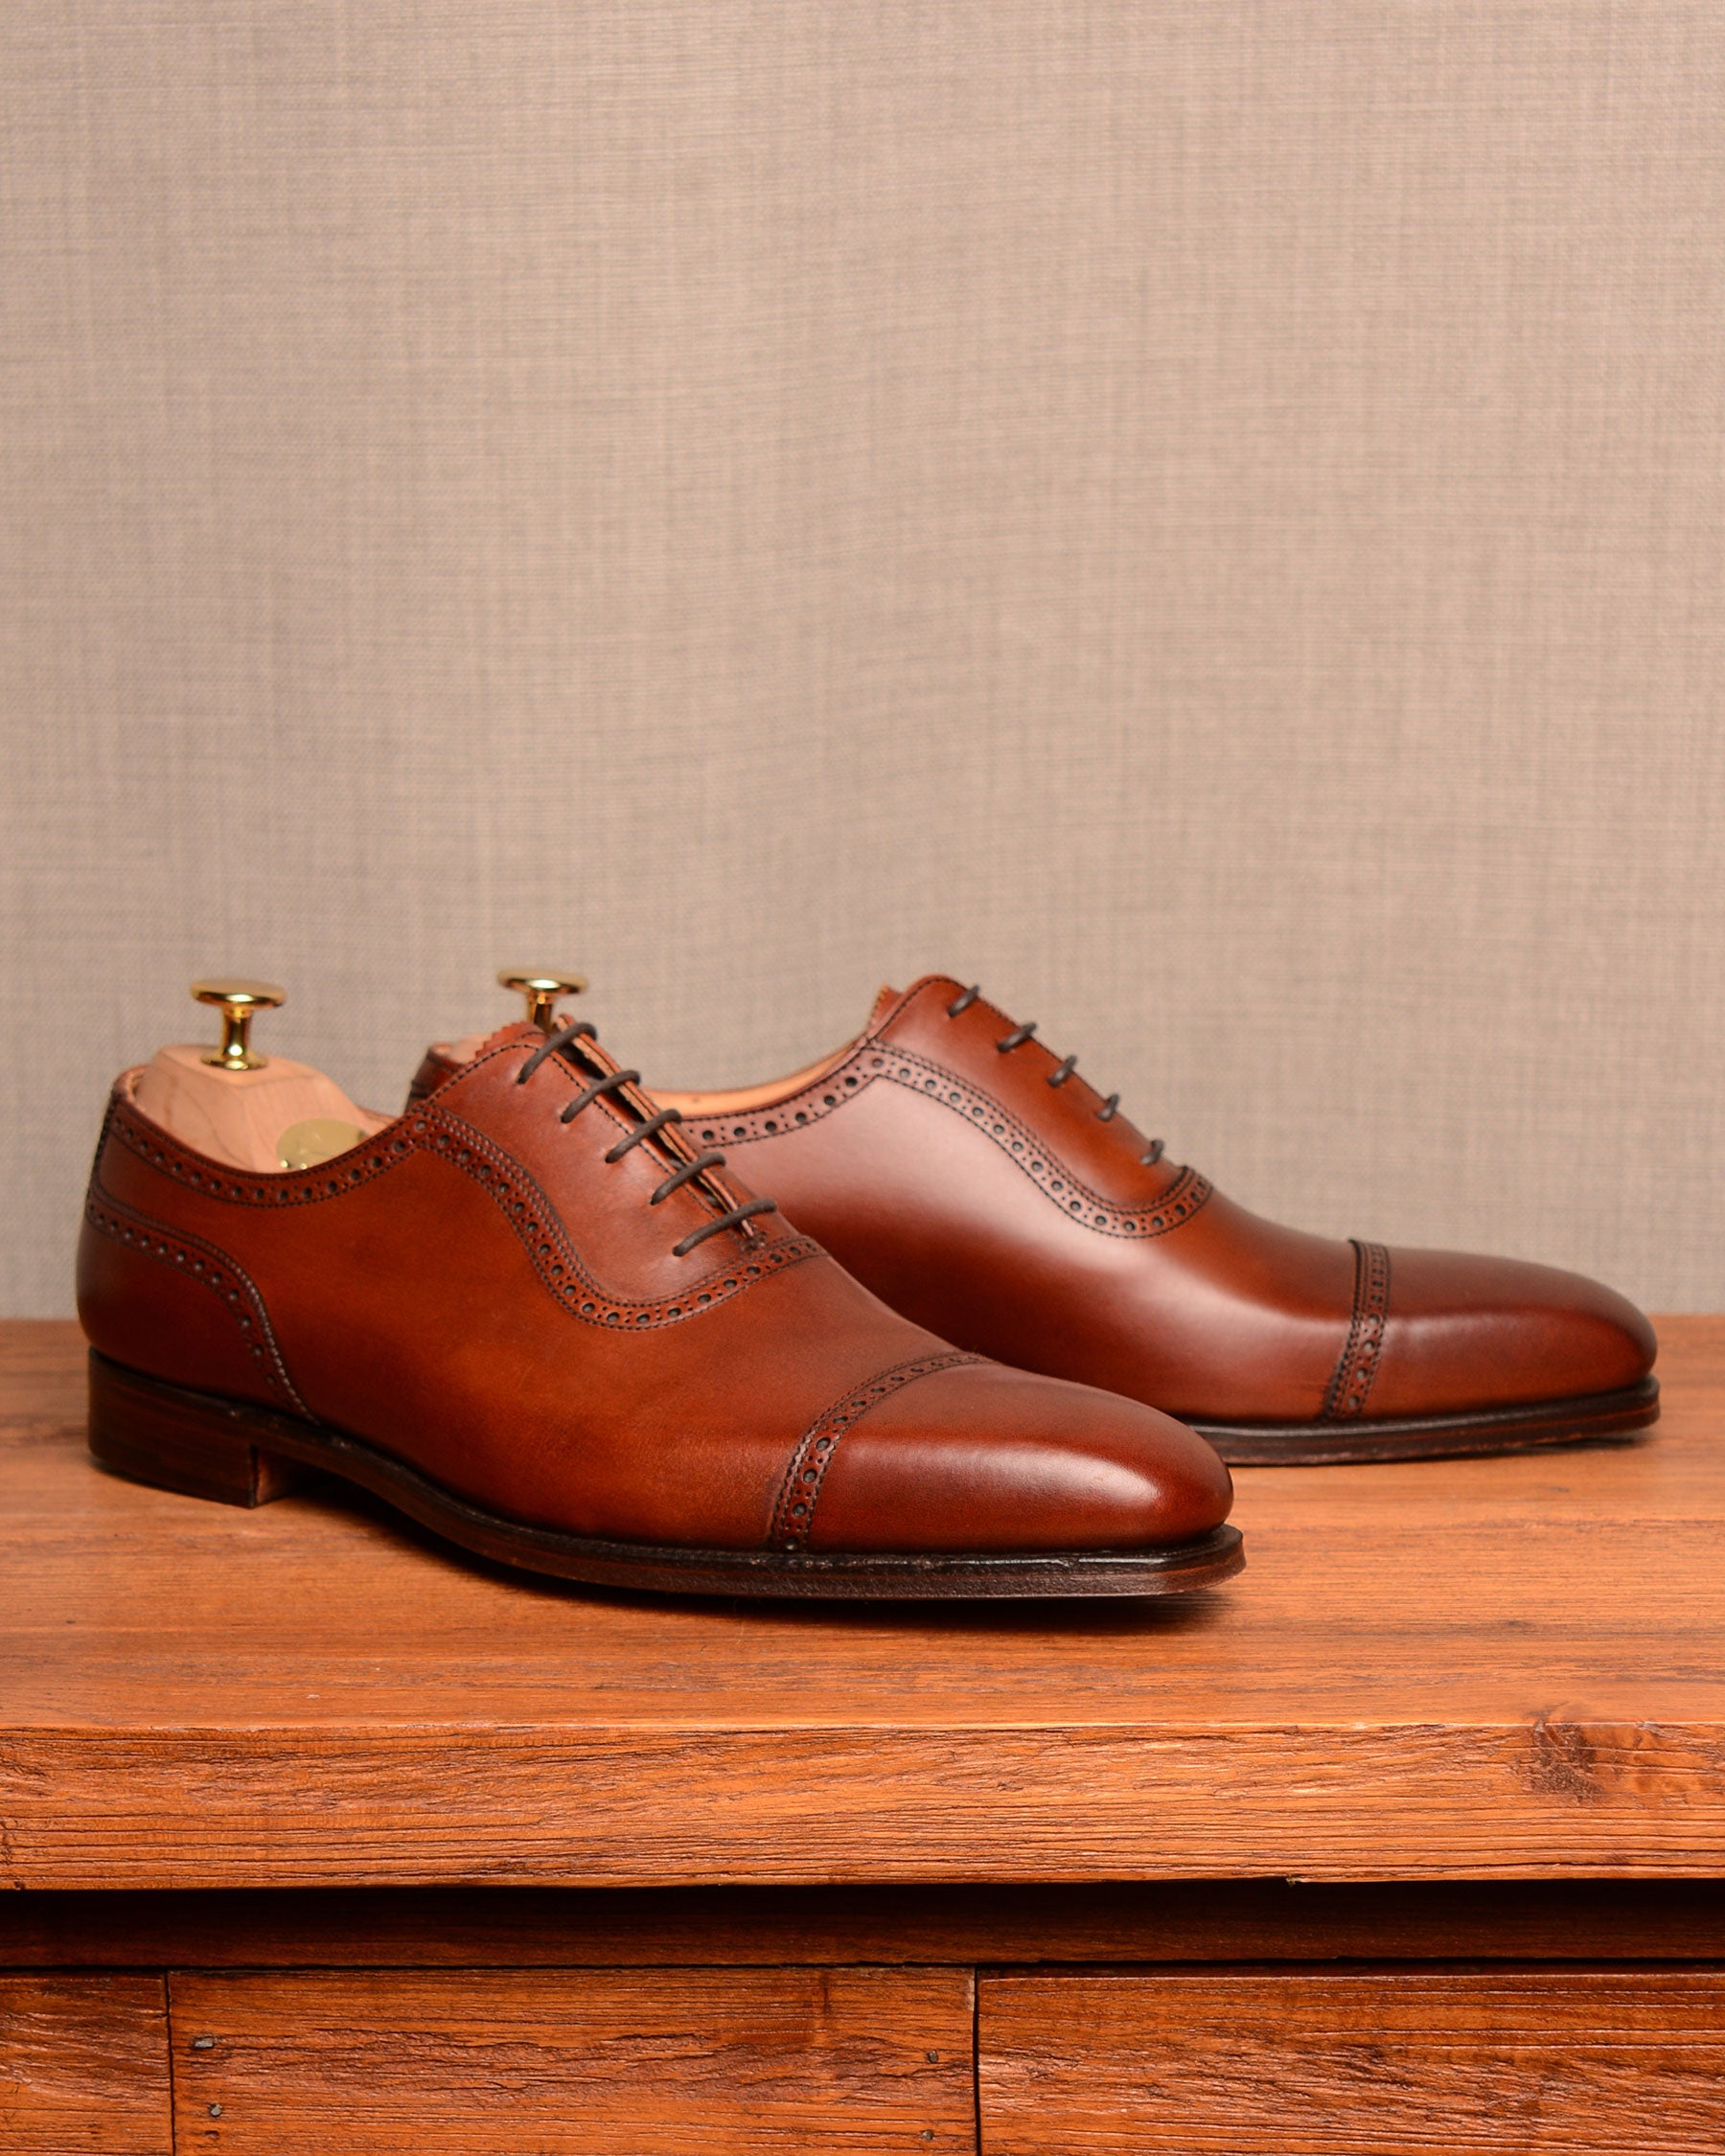 Crockett & Jones Westbourne - Chestnut